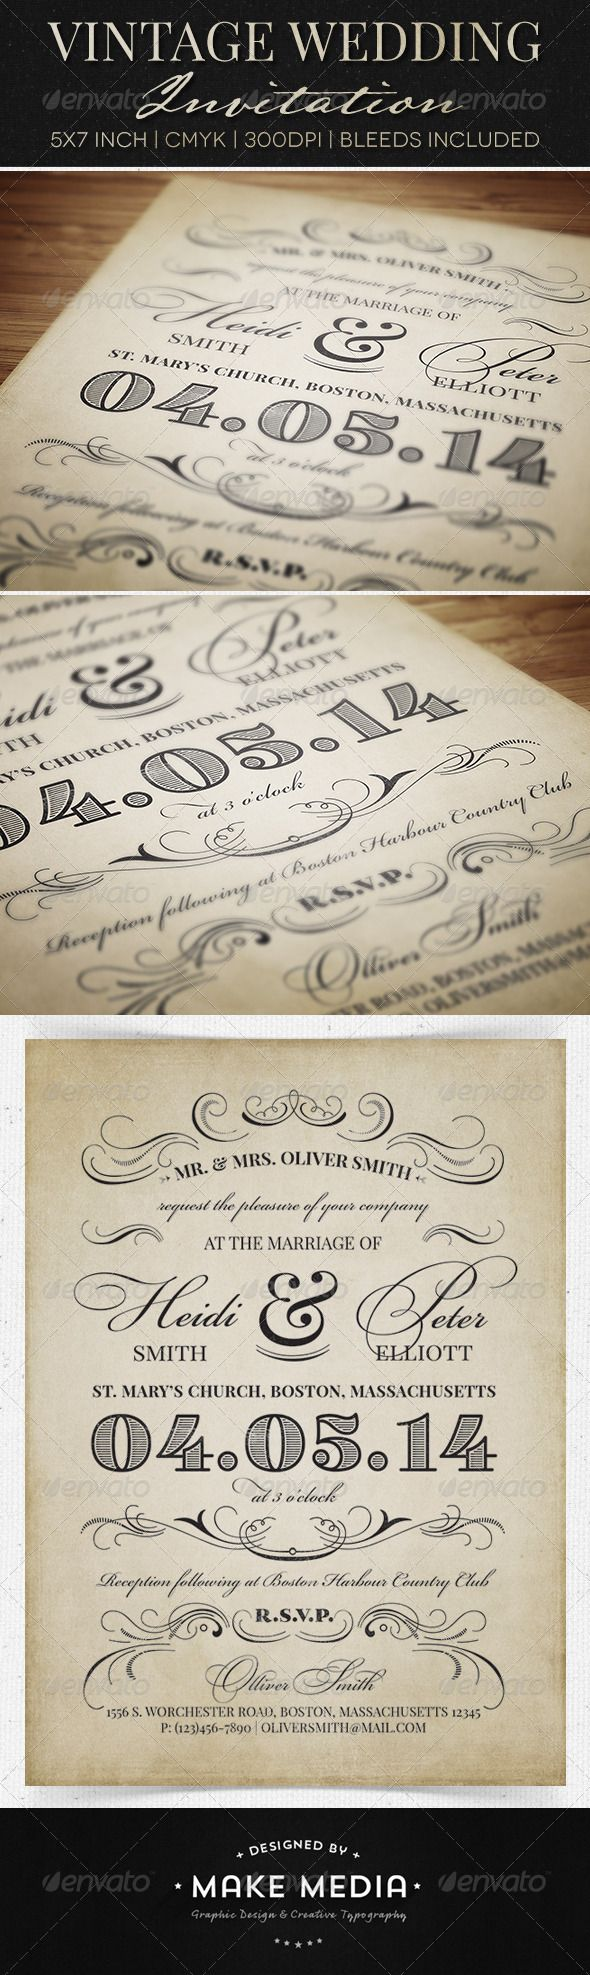 148 best Invitation images on Pinterest | Invitation cards ...